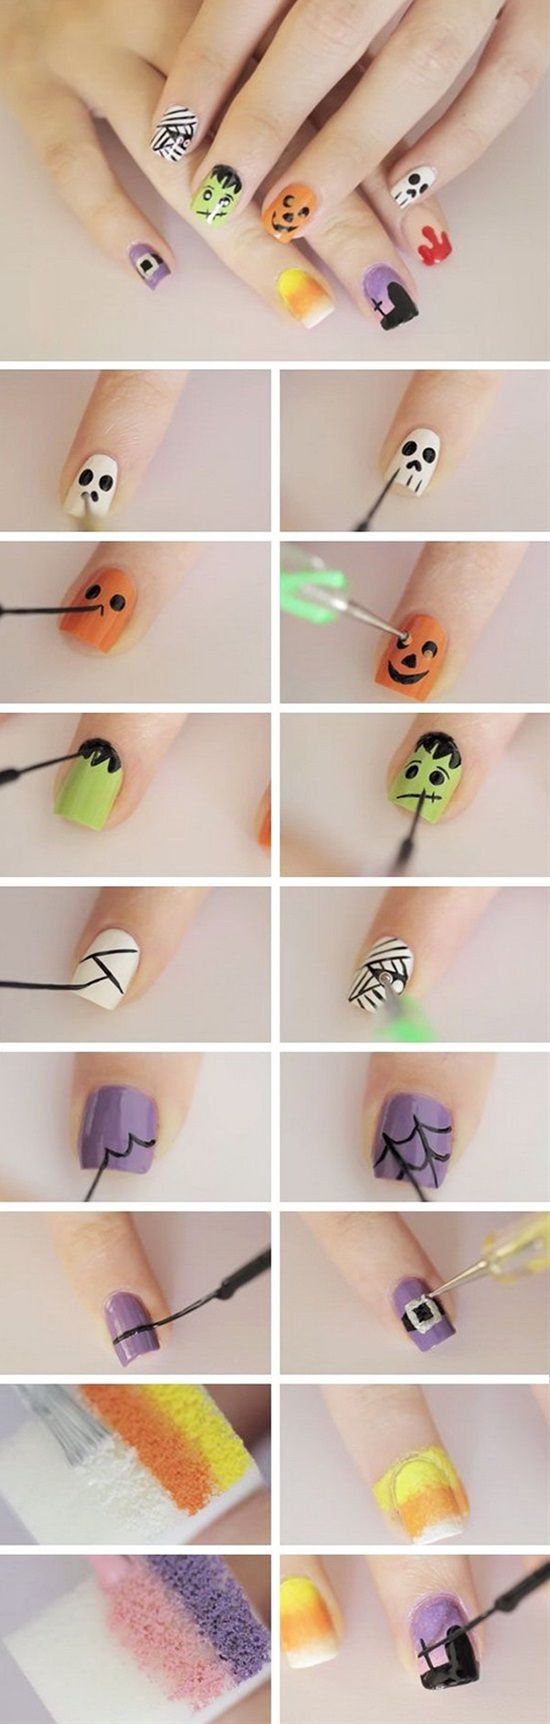 Nail Art Ideas » Nail Art Courses Online Free - Pictures of Nail Art ...